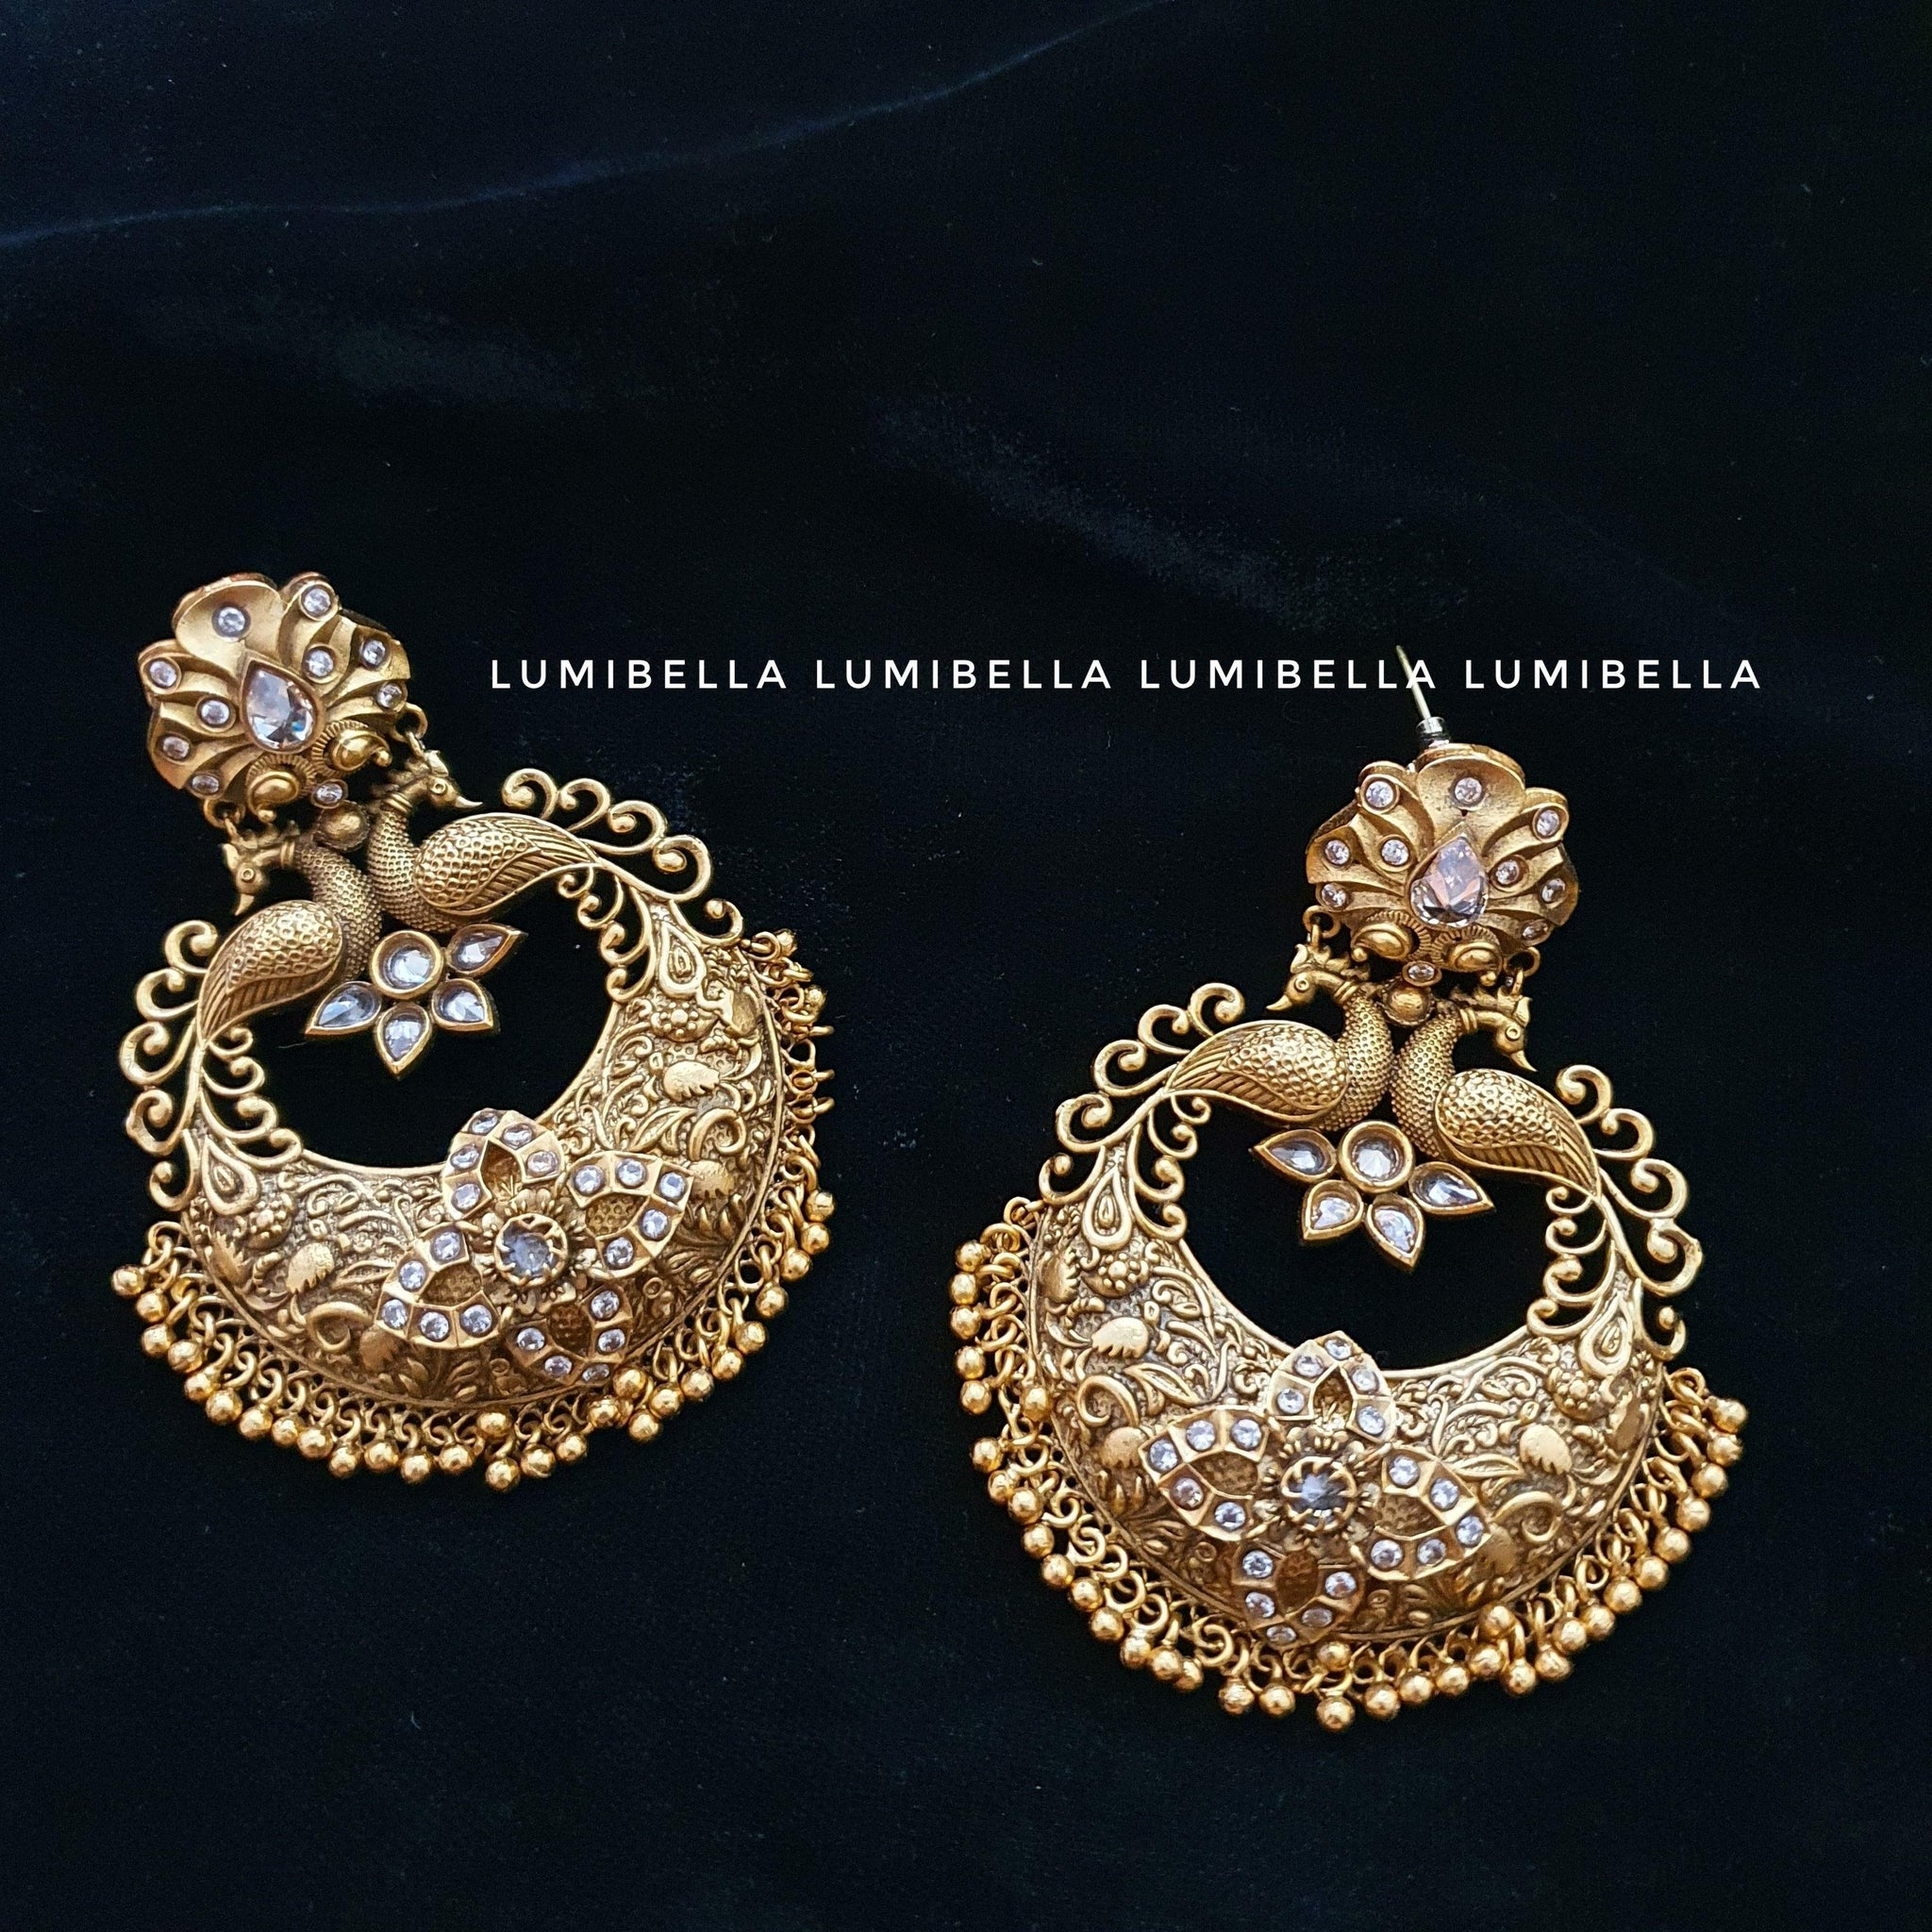 Chandbali earrings lumibella